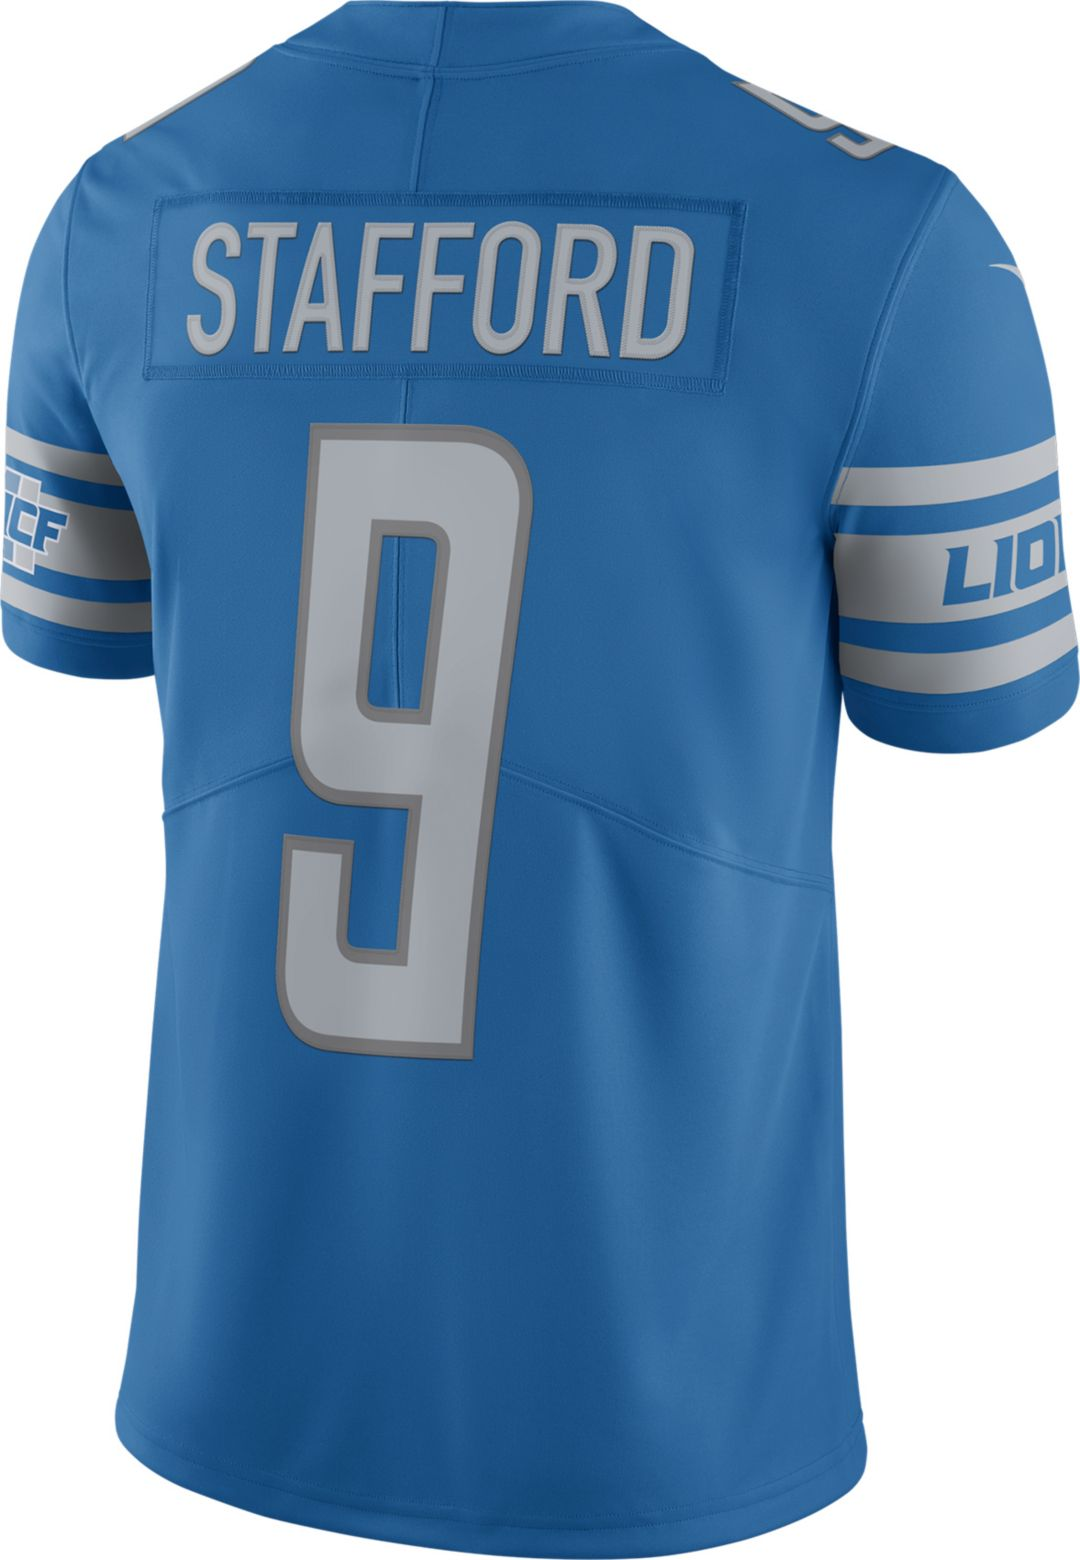 New Nike Men's Home Limited Jersey Detroit Lions Matthew Stafford #9  for cheap